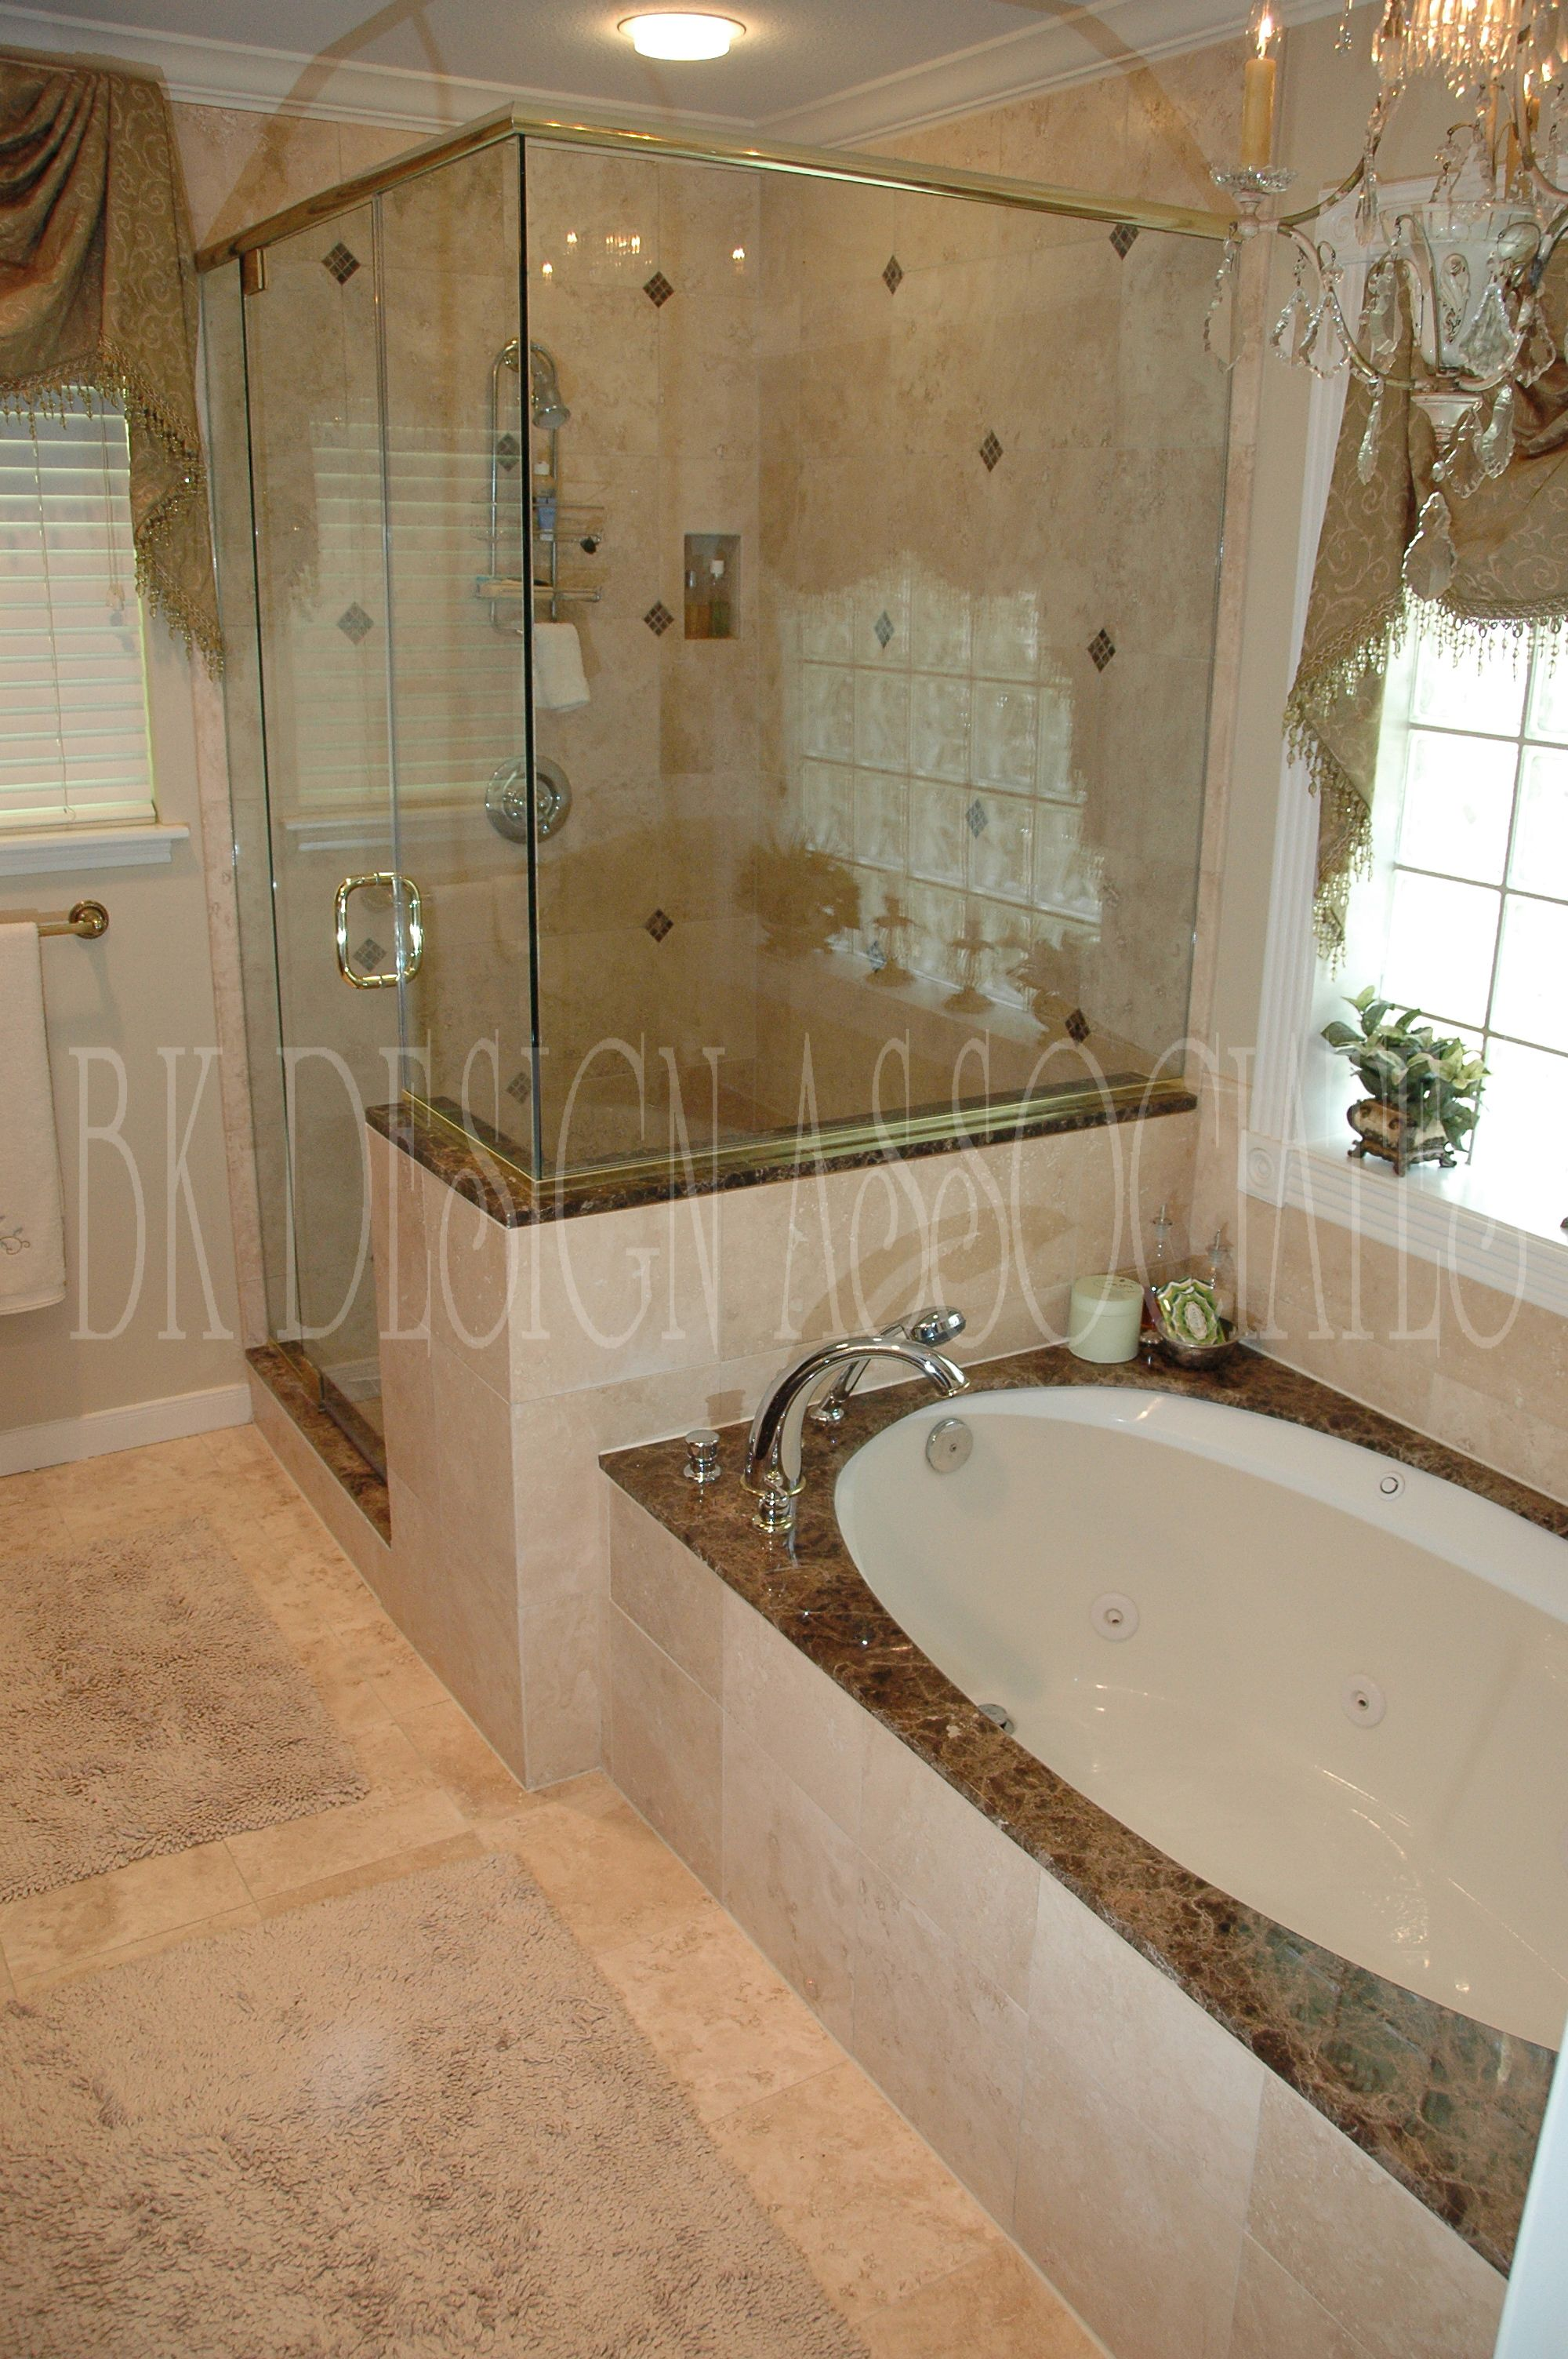 Small Bathroom Ideas With Tub And Shower i'm totally gutting my master bath. i have attached a proposed